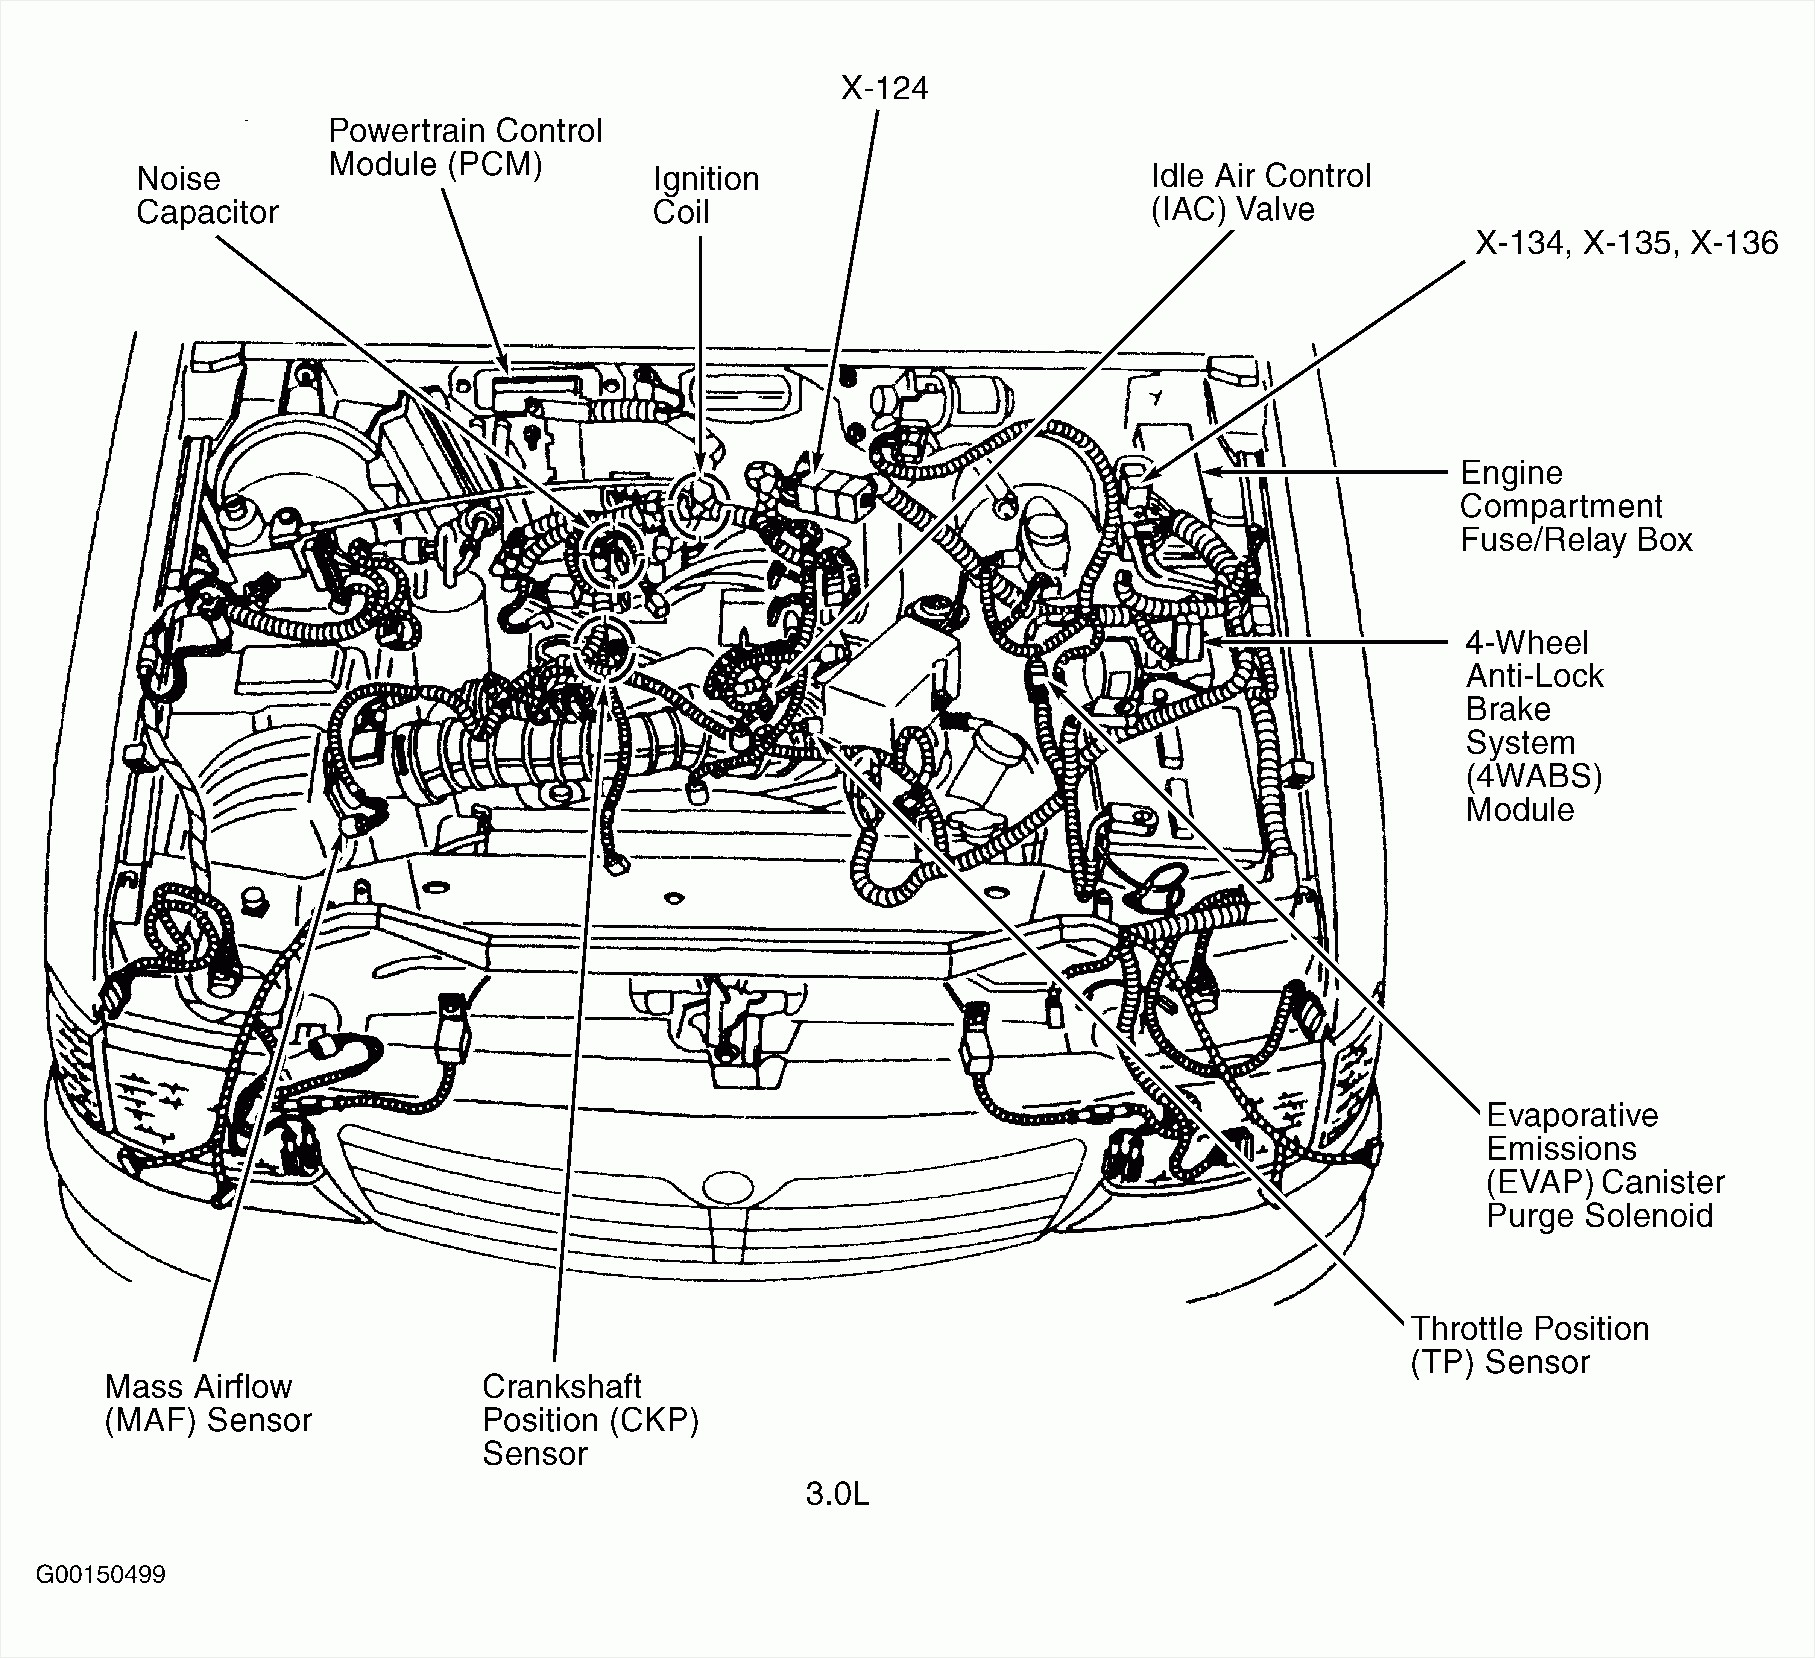 87 Mazda 626 Engine Diagram - Wiring Diagram K8 on